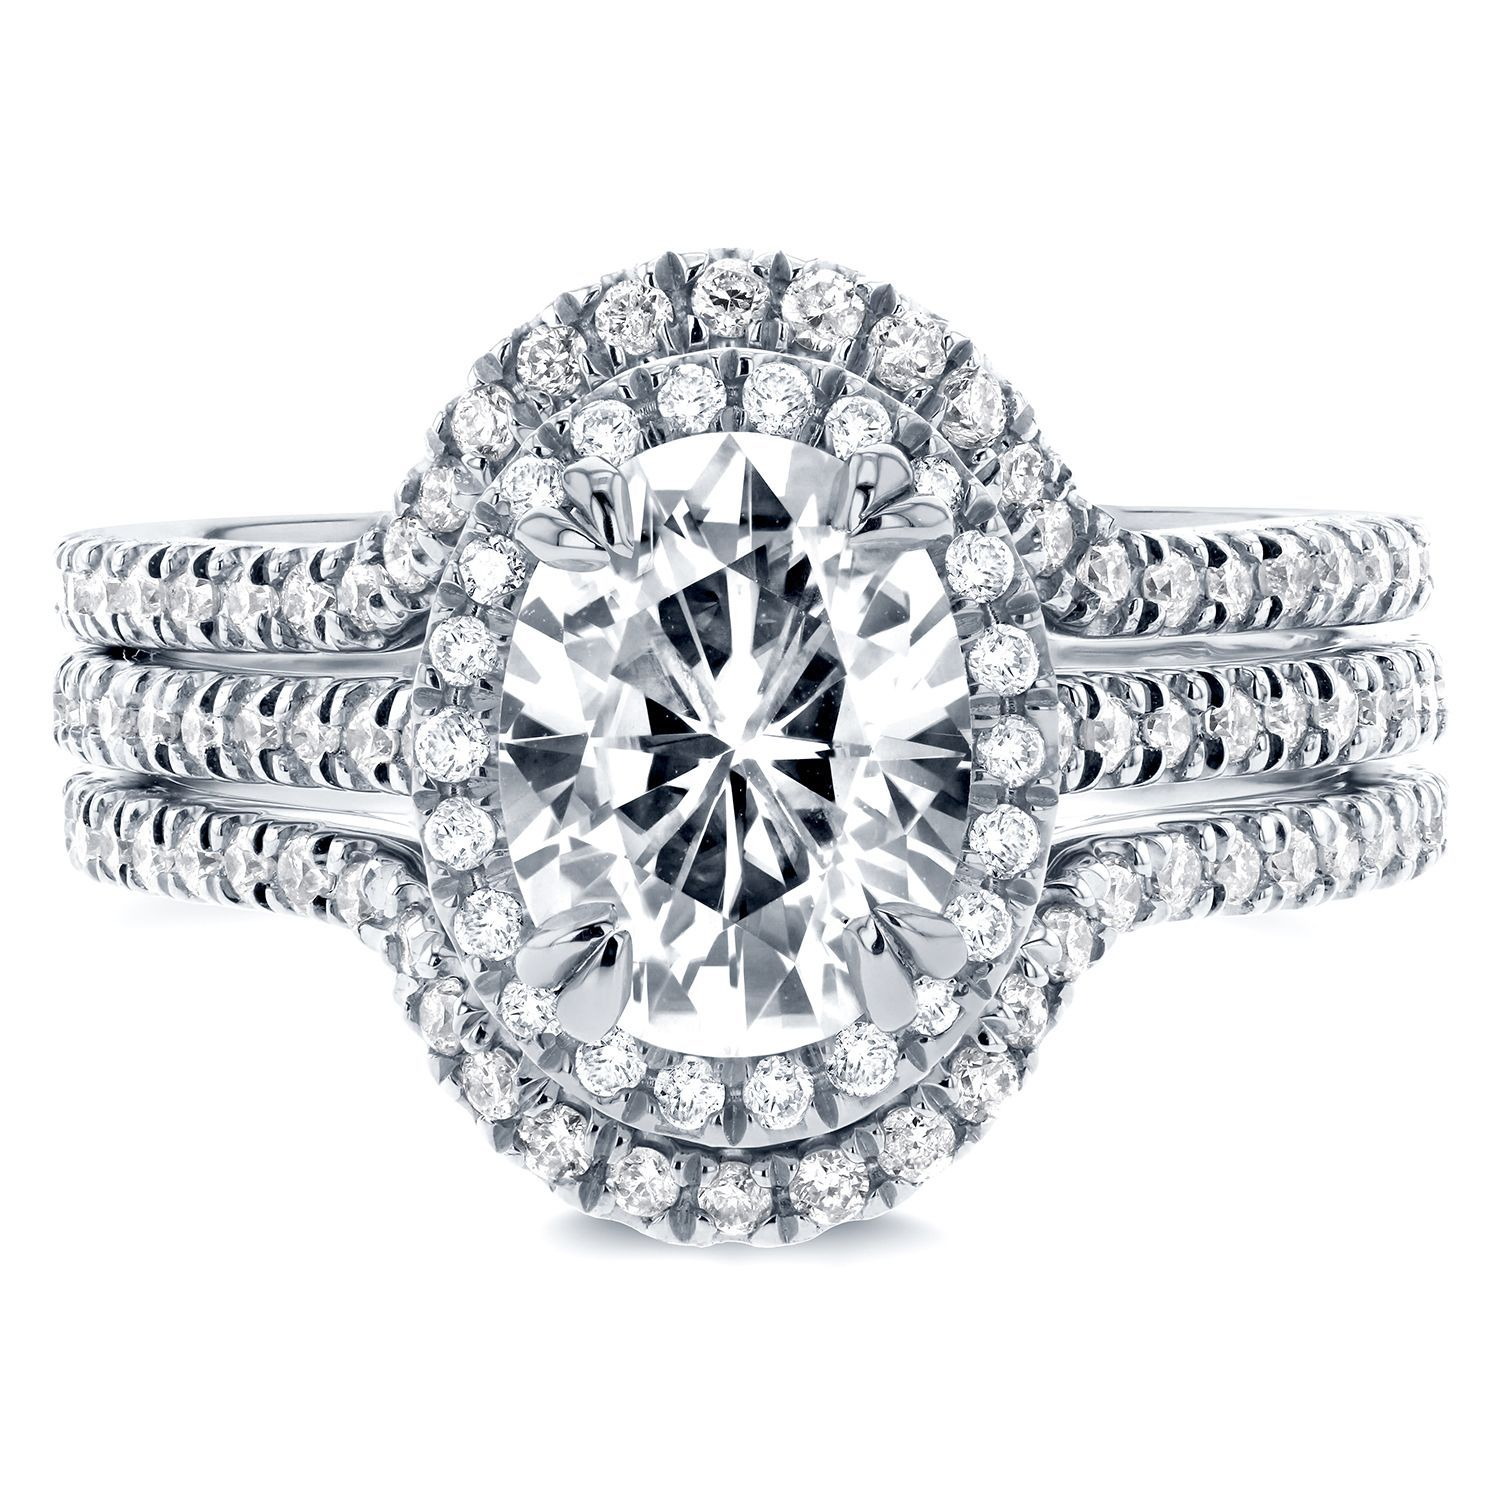 Oval halo 3 piece bridal set featuring a large Forever Classic